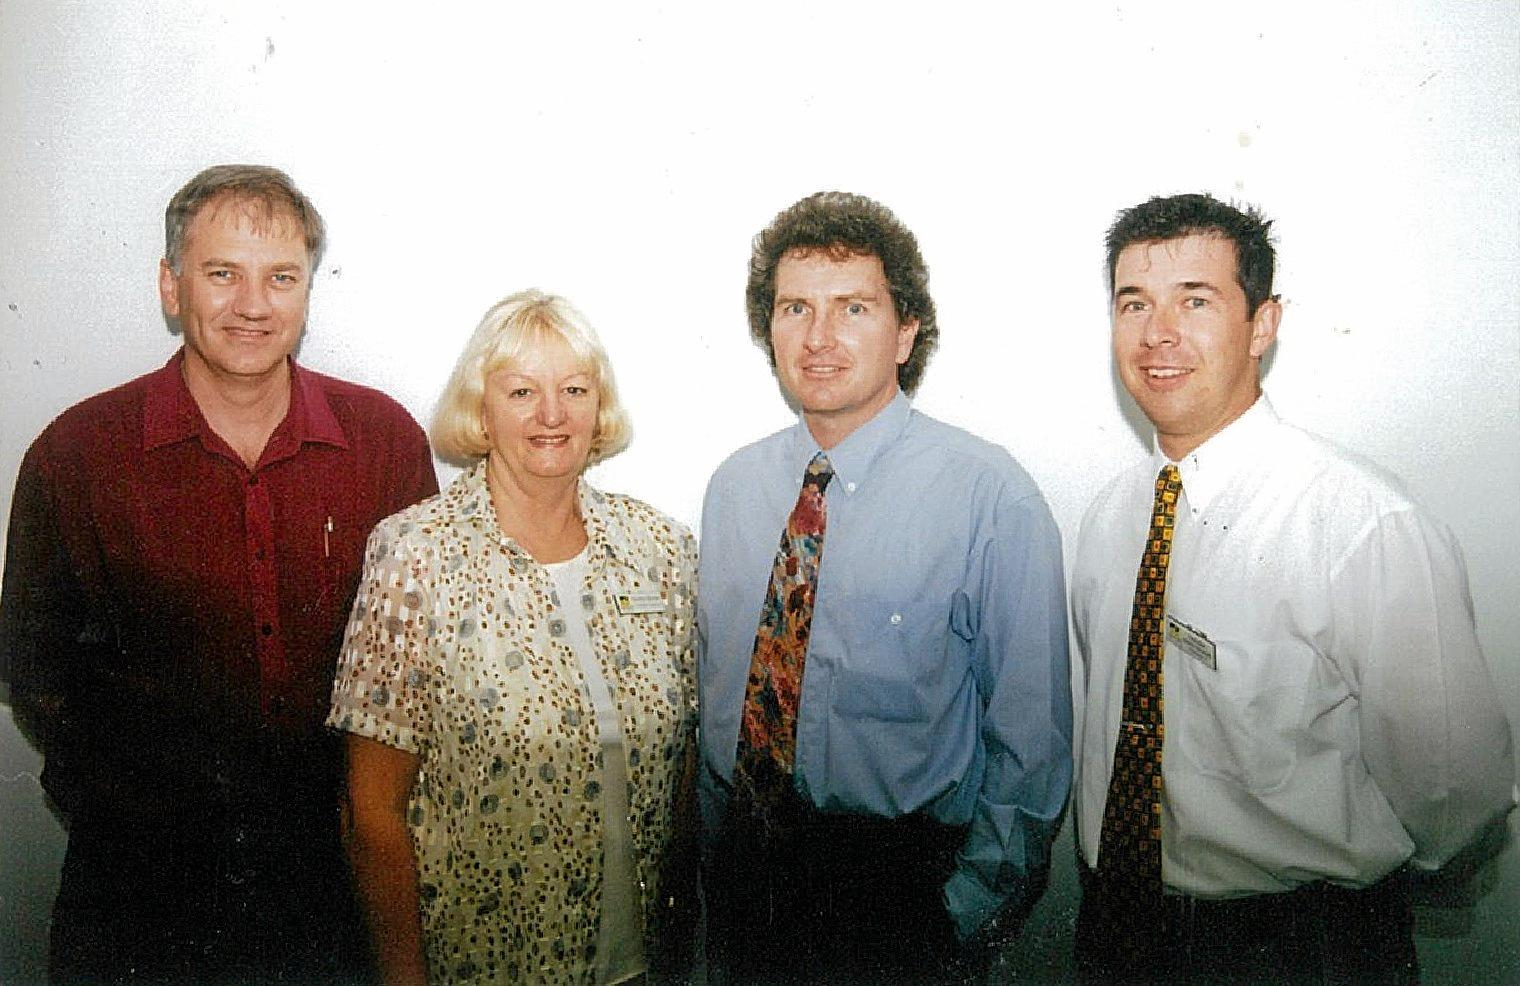 Councillors Victor Atwood, Heather Morrow, David Morrison and Andrew Antoniolli when elected in the year 2000. Photo: Contributed